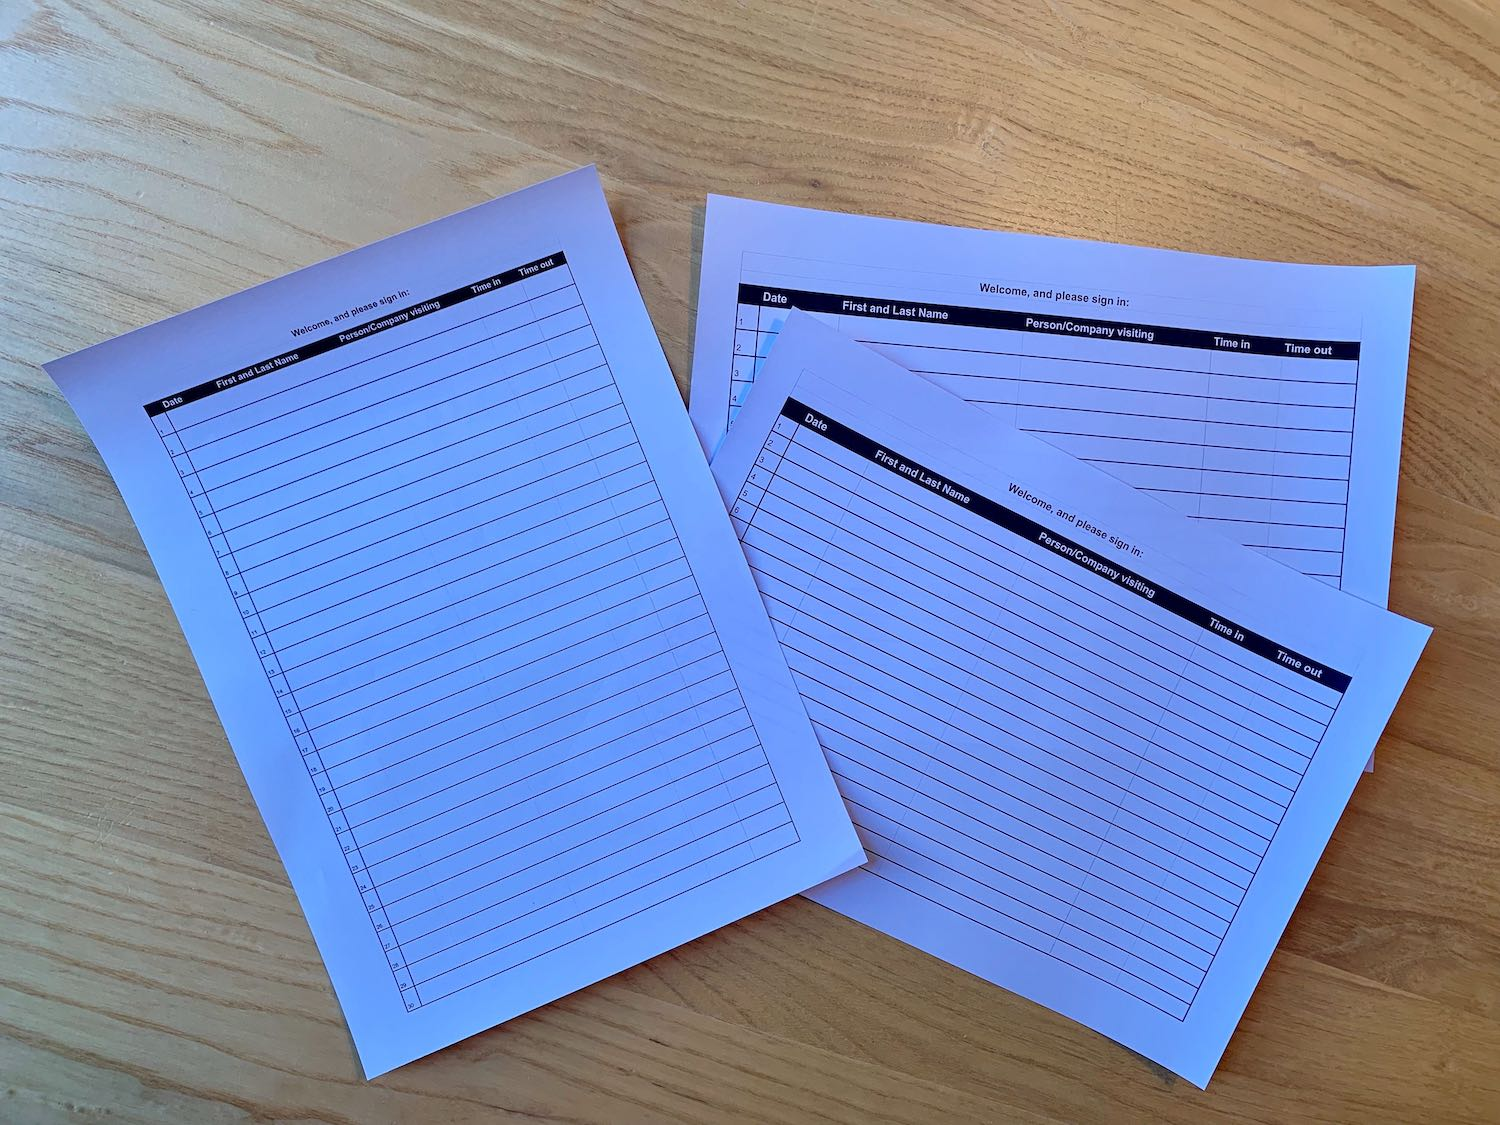 It's just a picture of Printable Sign in Sheet for Meeting pertaining to attendance